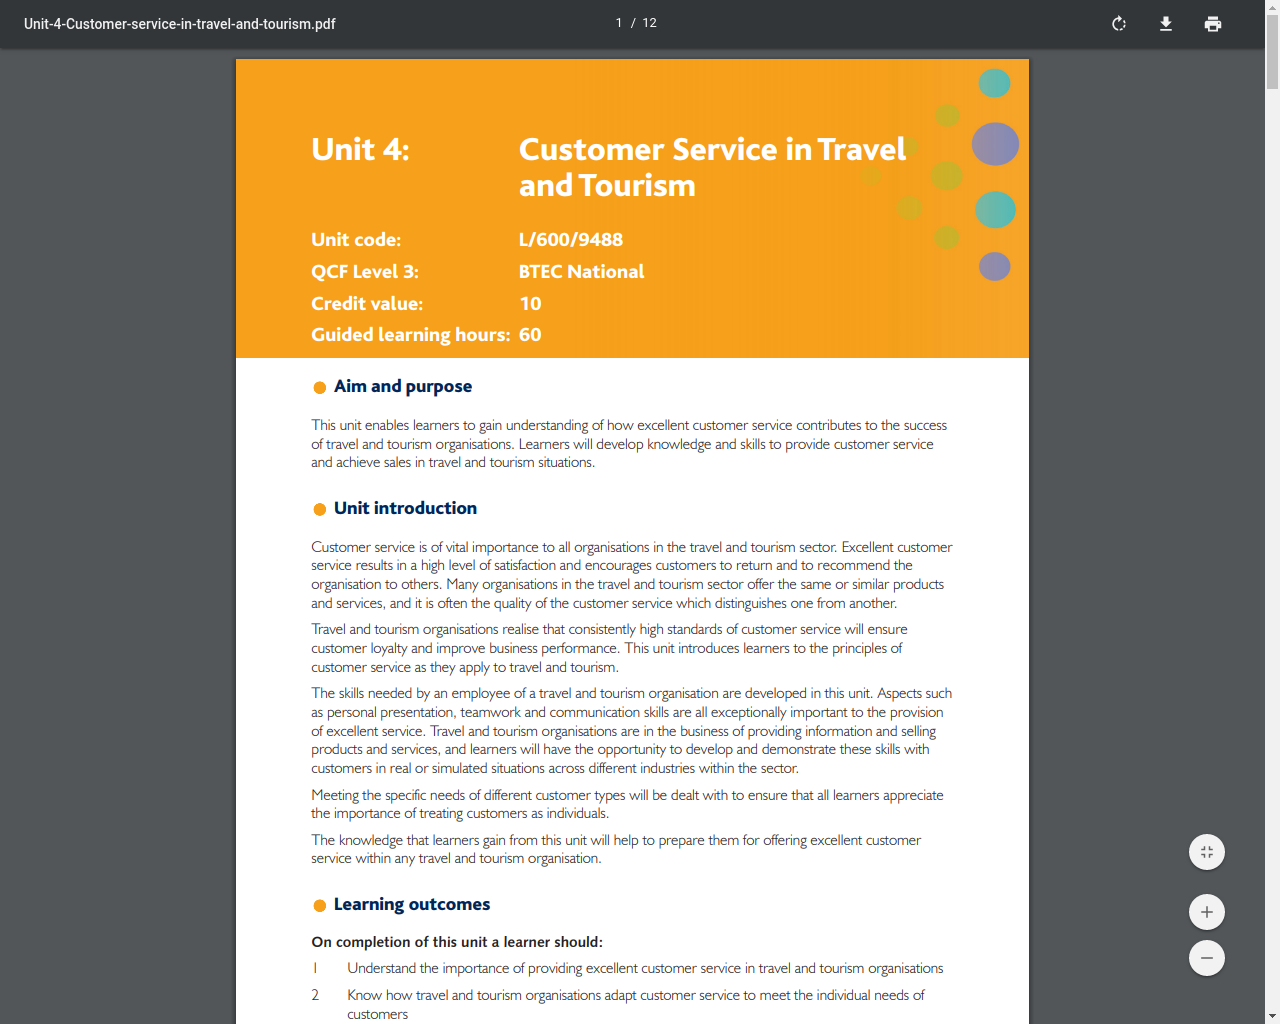 Unit 4 - Customer Service in Travel and Tourism